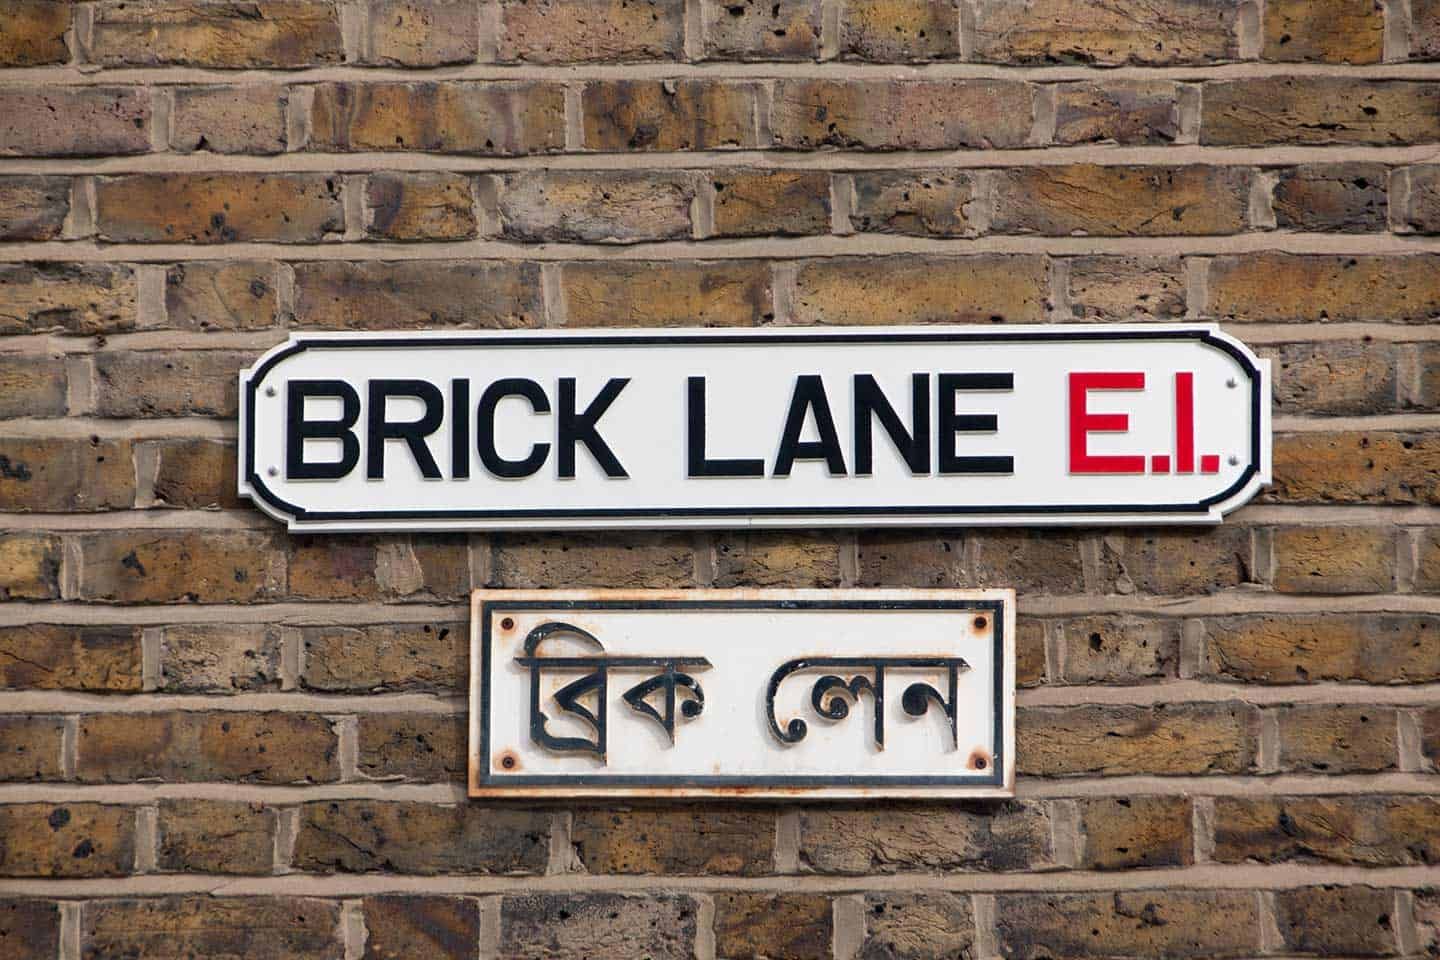 Image of the Brick Lane street signs in English and Bengali